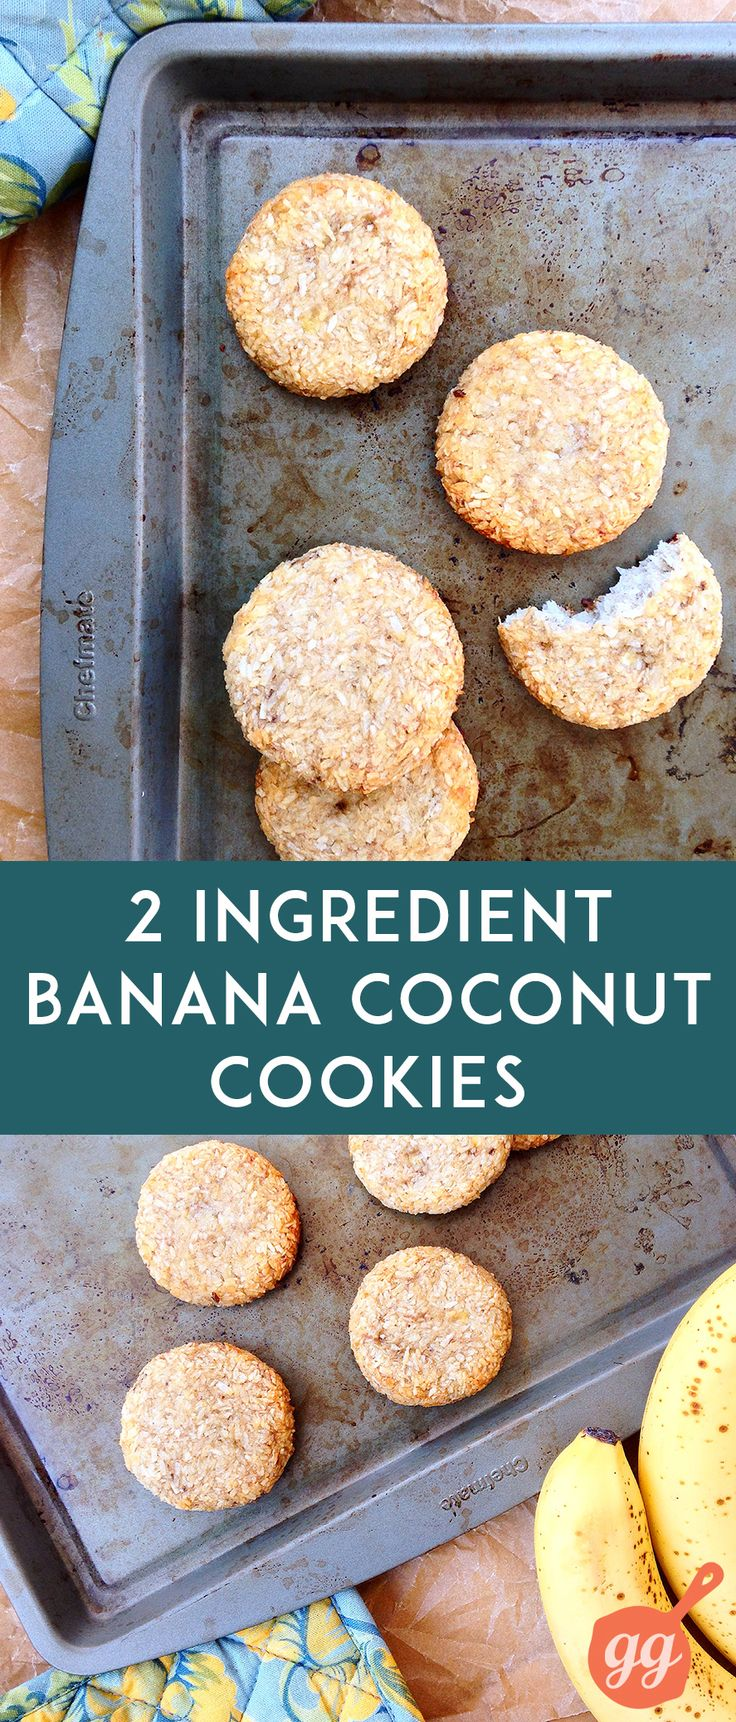 The name says it all! 2 Ingredient Banana Coconut Cookies | GrokGrub.com #paleo #vegan #healthy